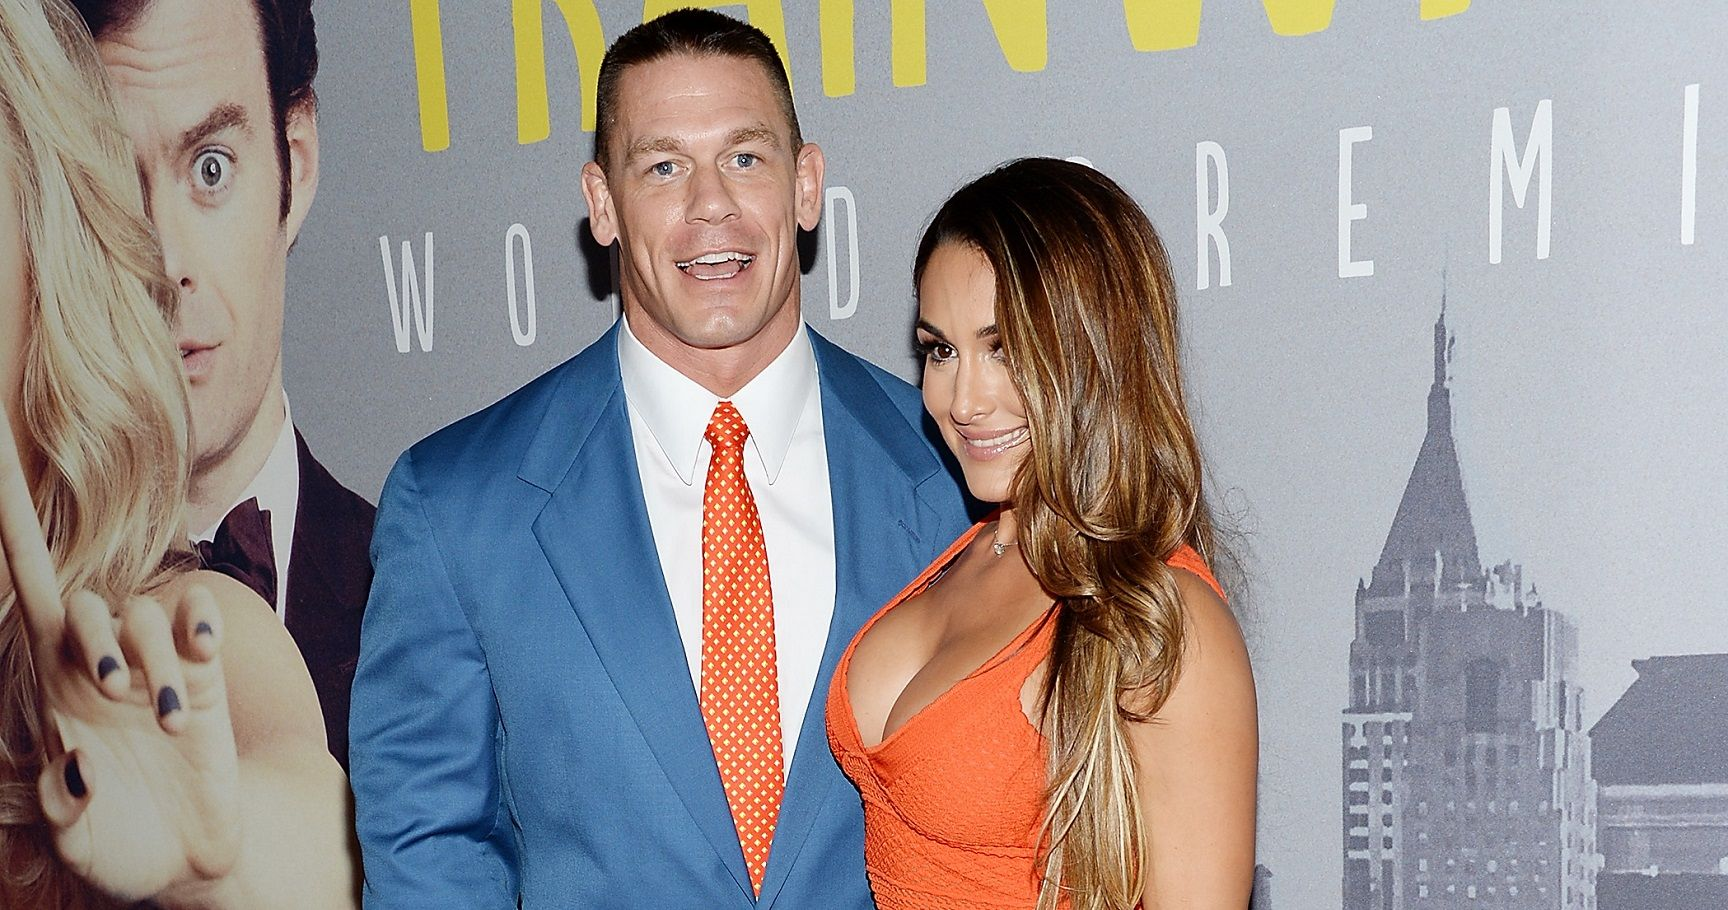 20 Current WWE Superstars With the Hottest WAGs